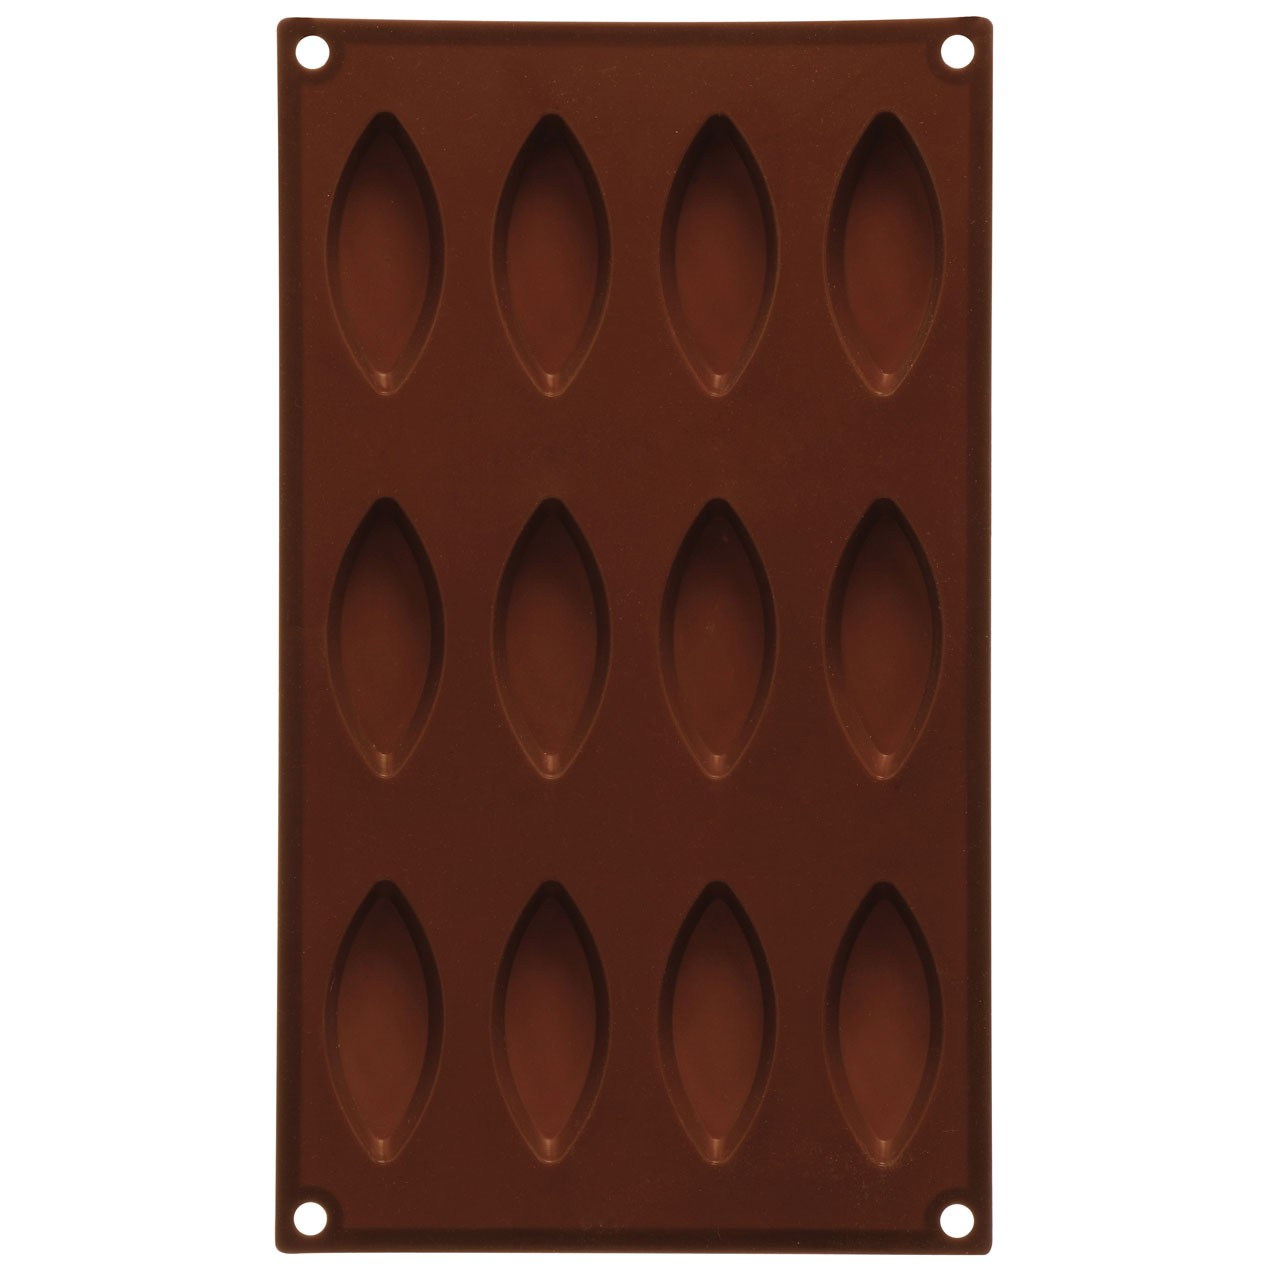 12 Eye Shaped Chocolate Mould Tray - Brown